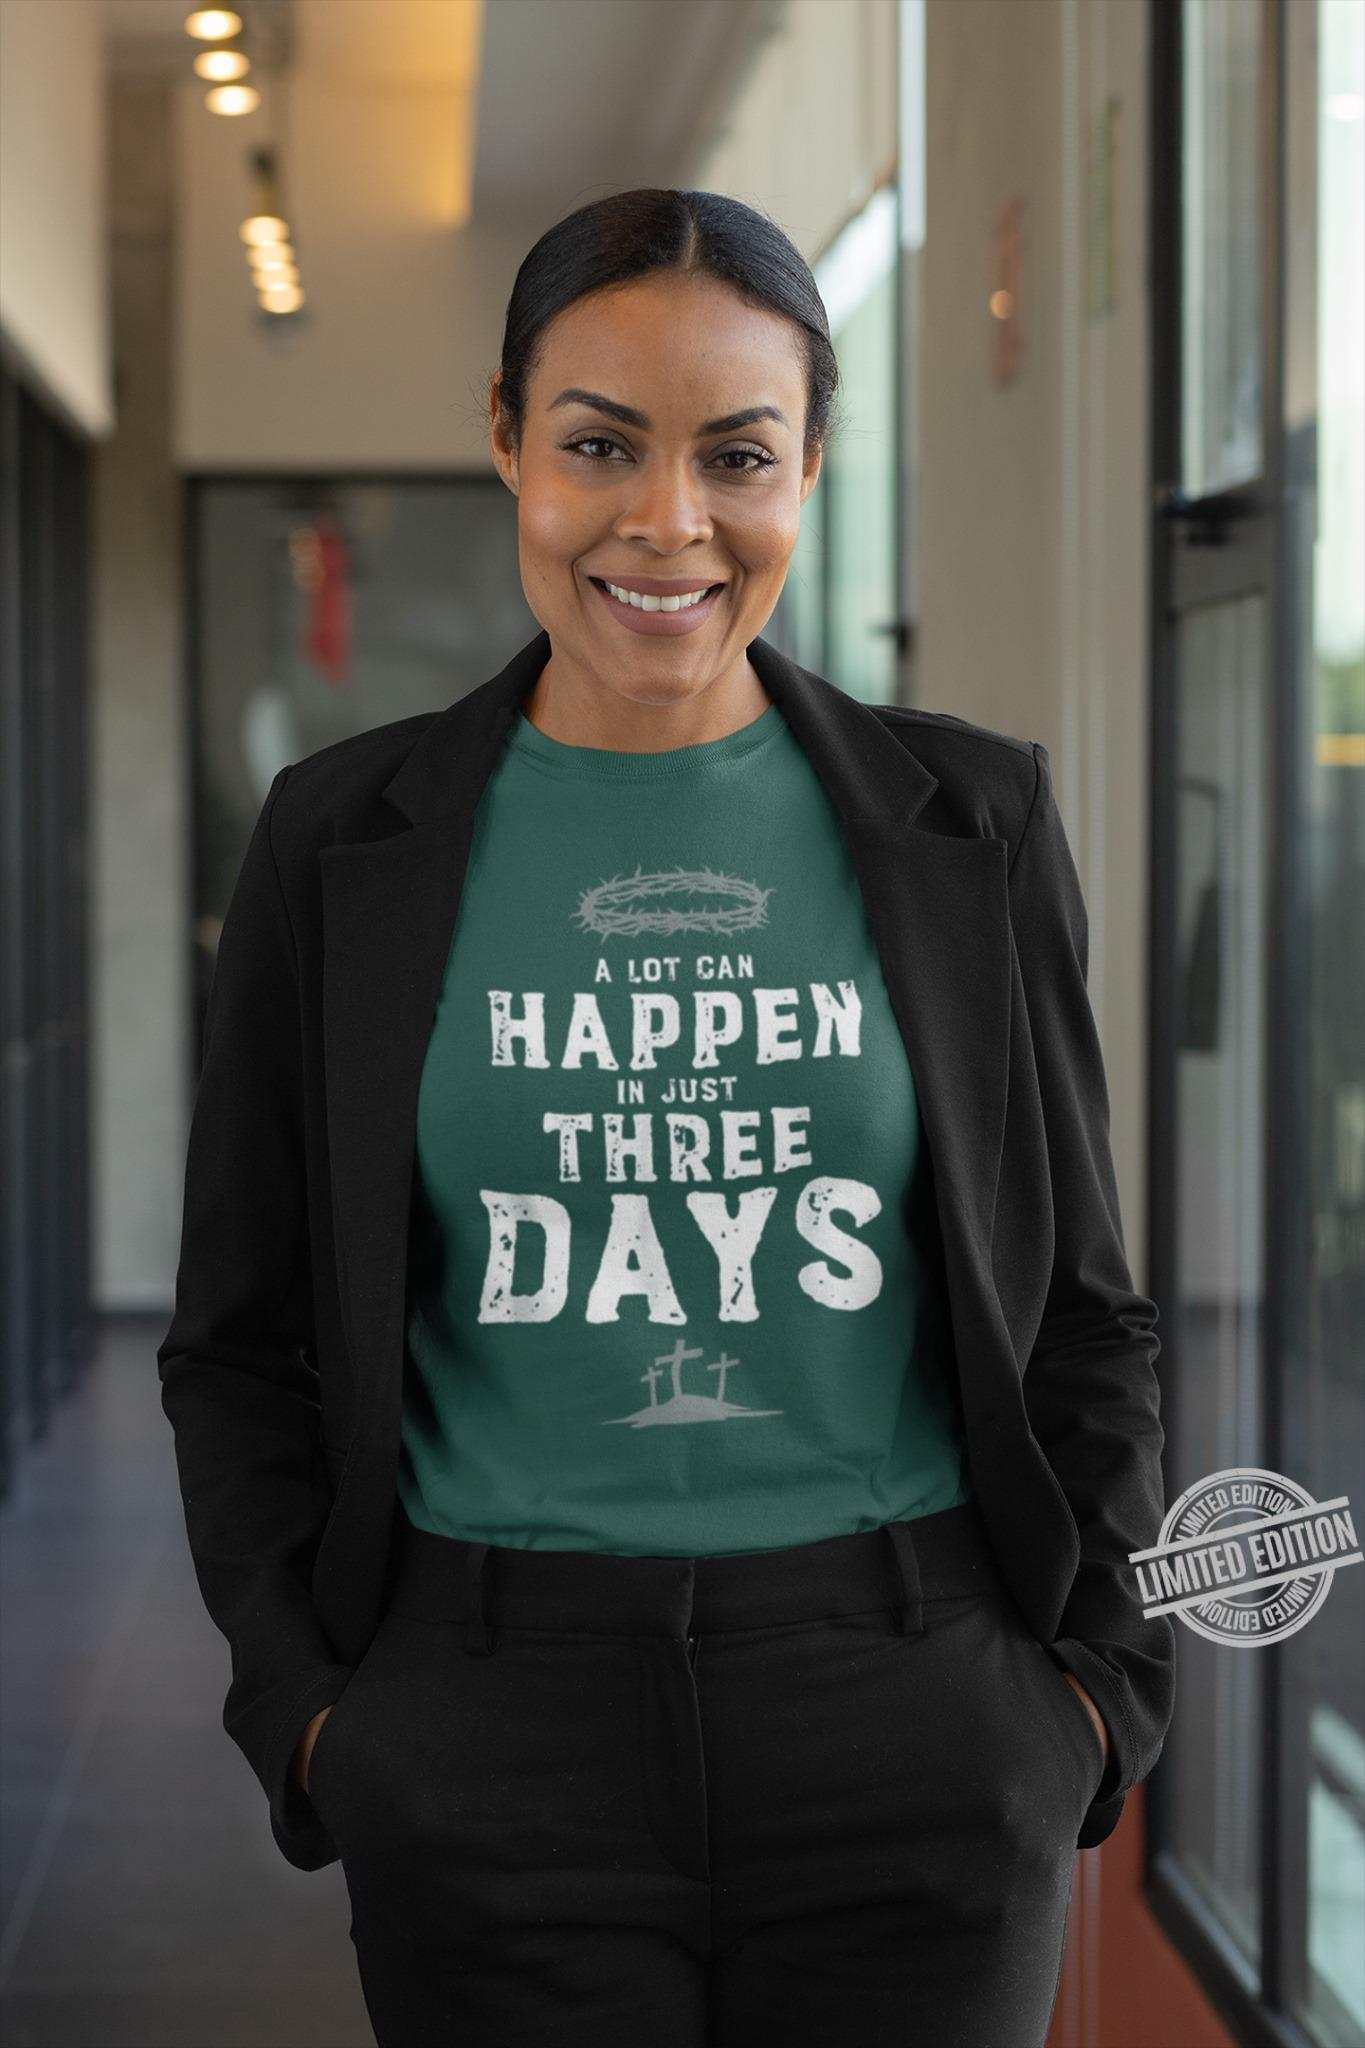 A Lot Can Happen In Just Three Days Shirt